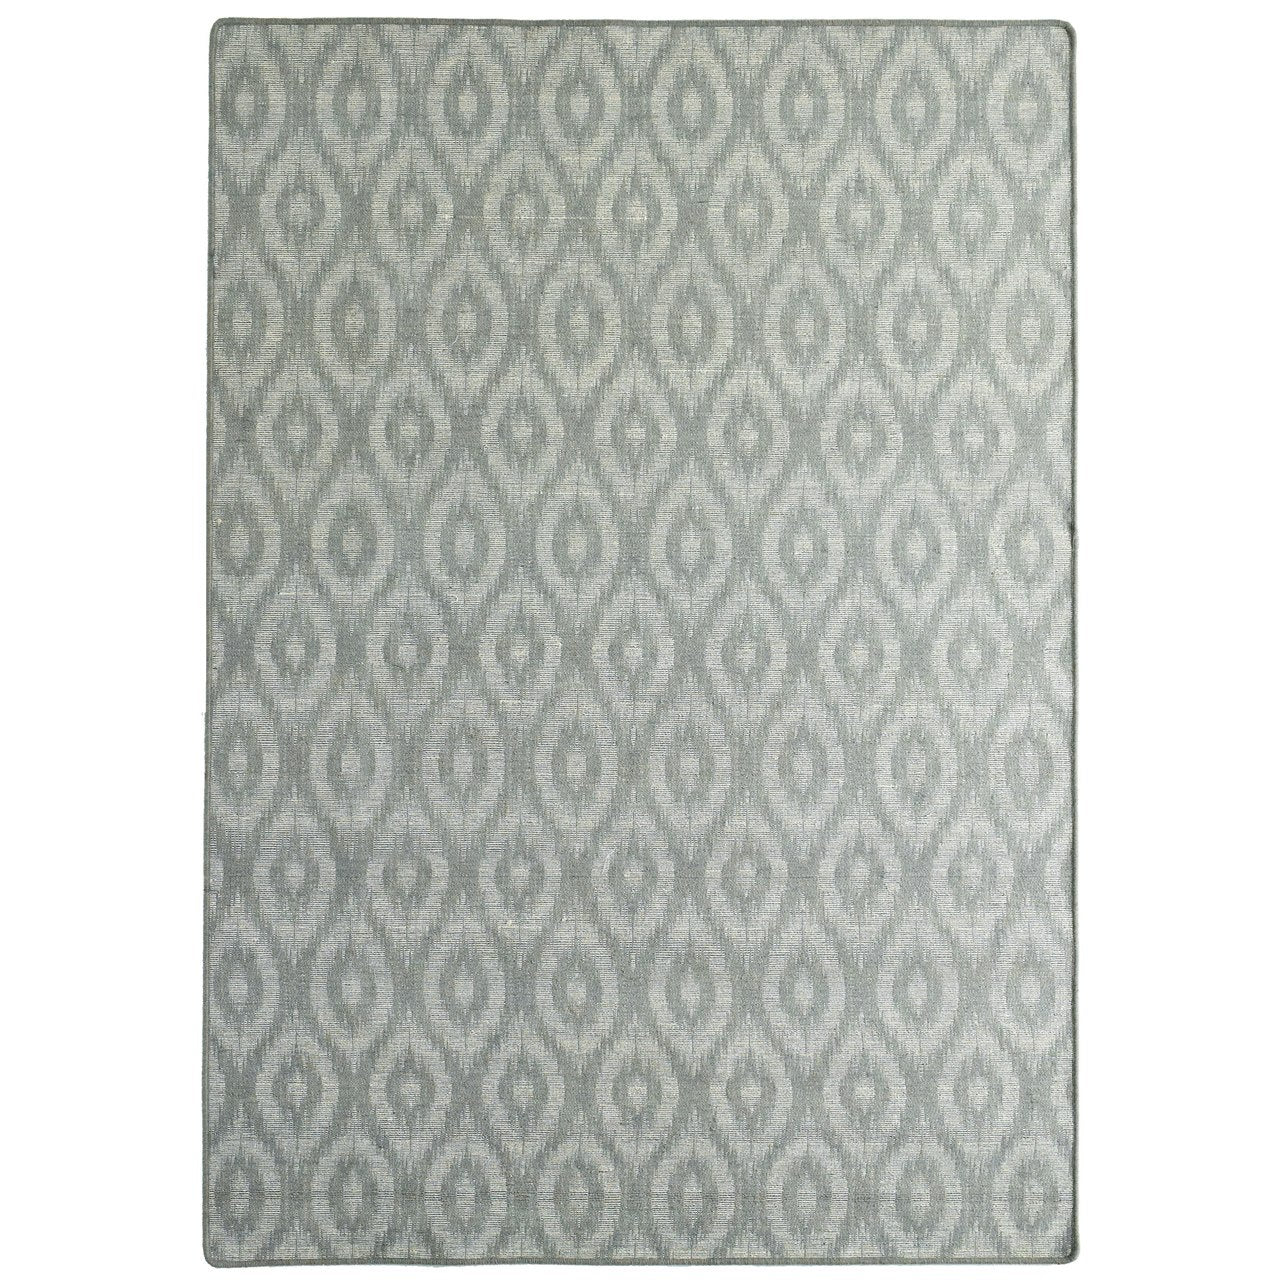 Amirah Modern Design Area Rug Grey Icustomrug